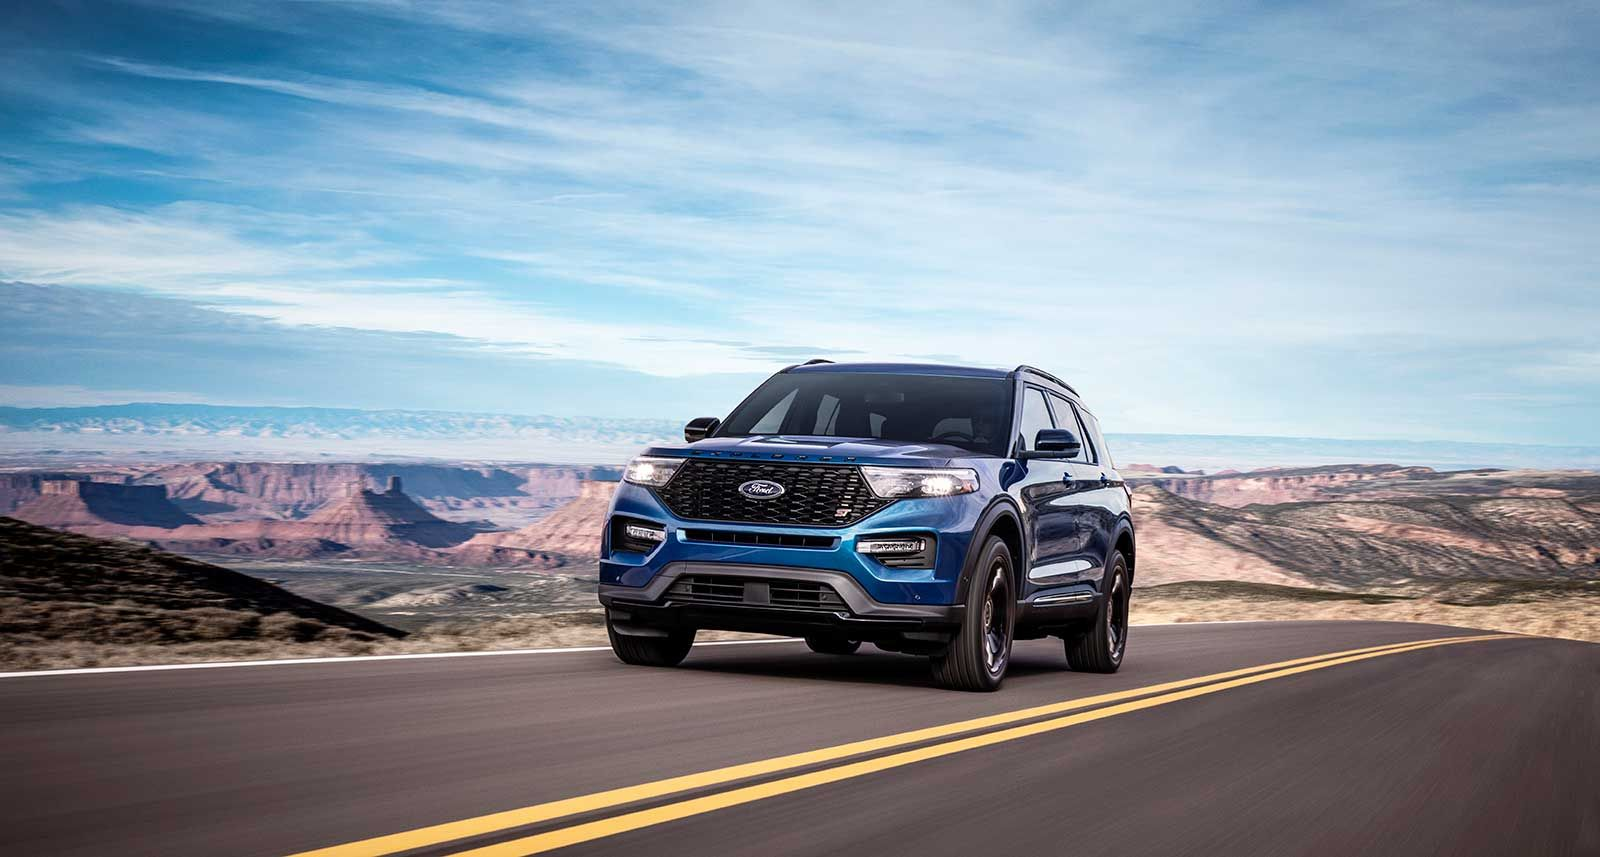 2020 Ford Explorer Gains High Performance St And Fuel Sipping Hybrid Models Ford Explorer 2020 Ford Explorer Ford